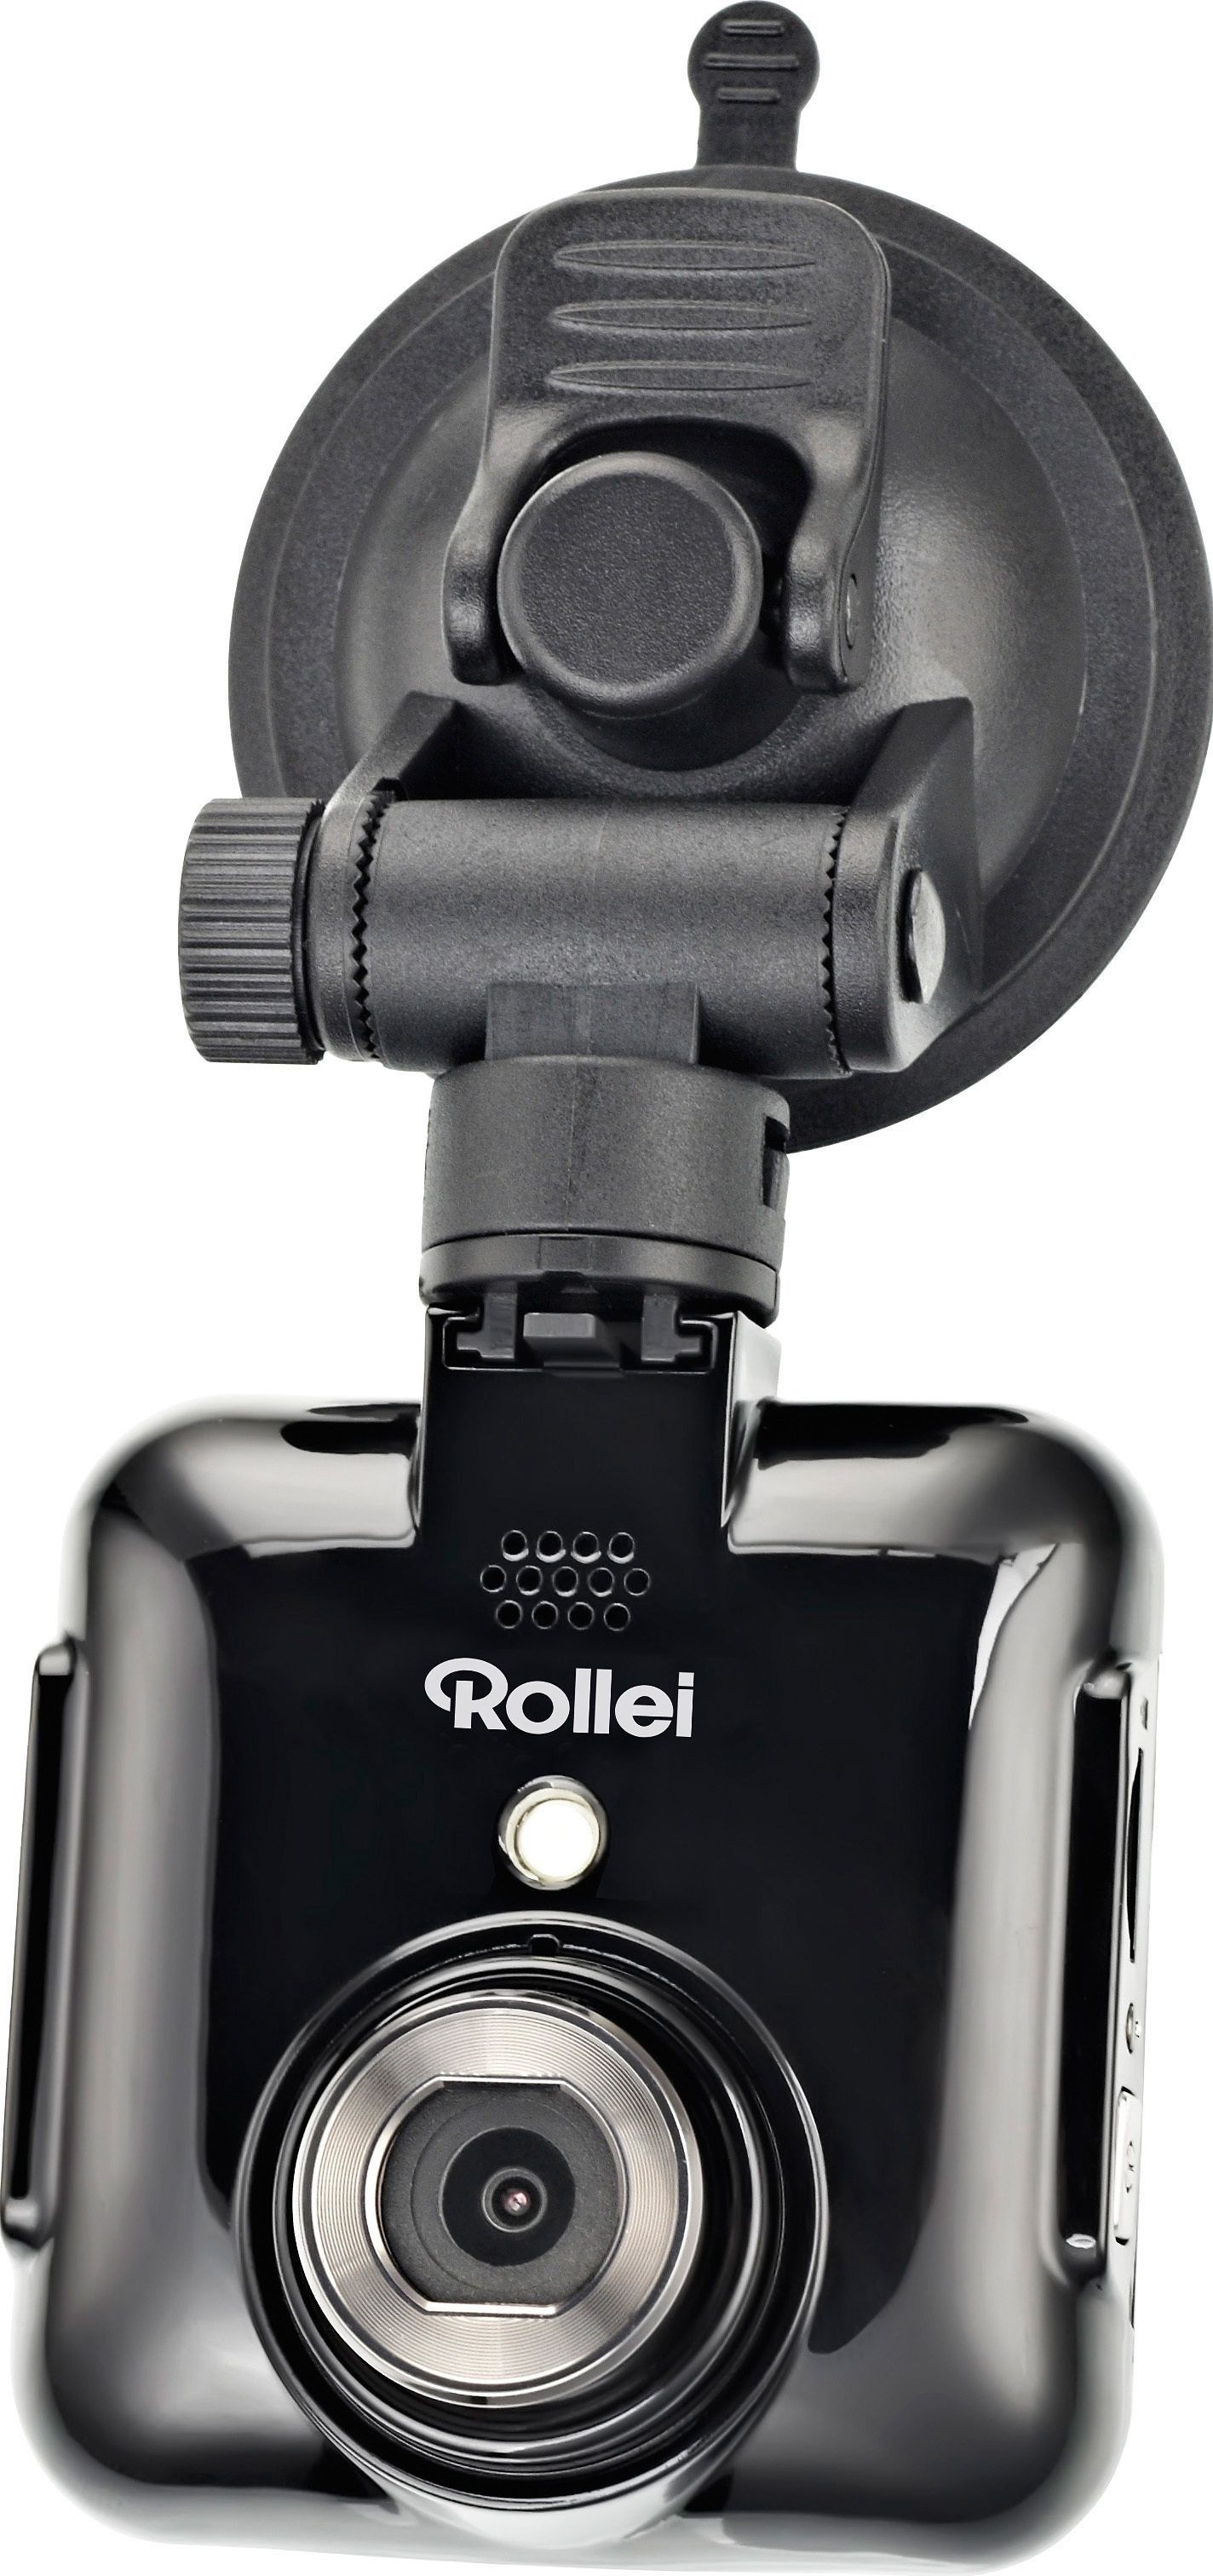 Rollei CarDVR-71 720p (HD-ready) Auto-Camcorder